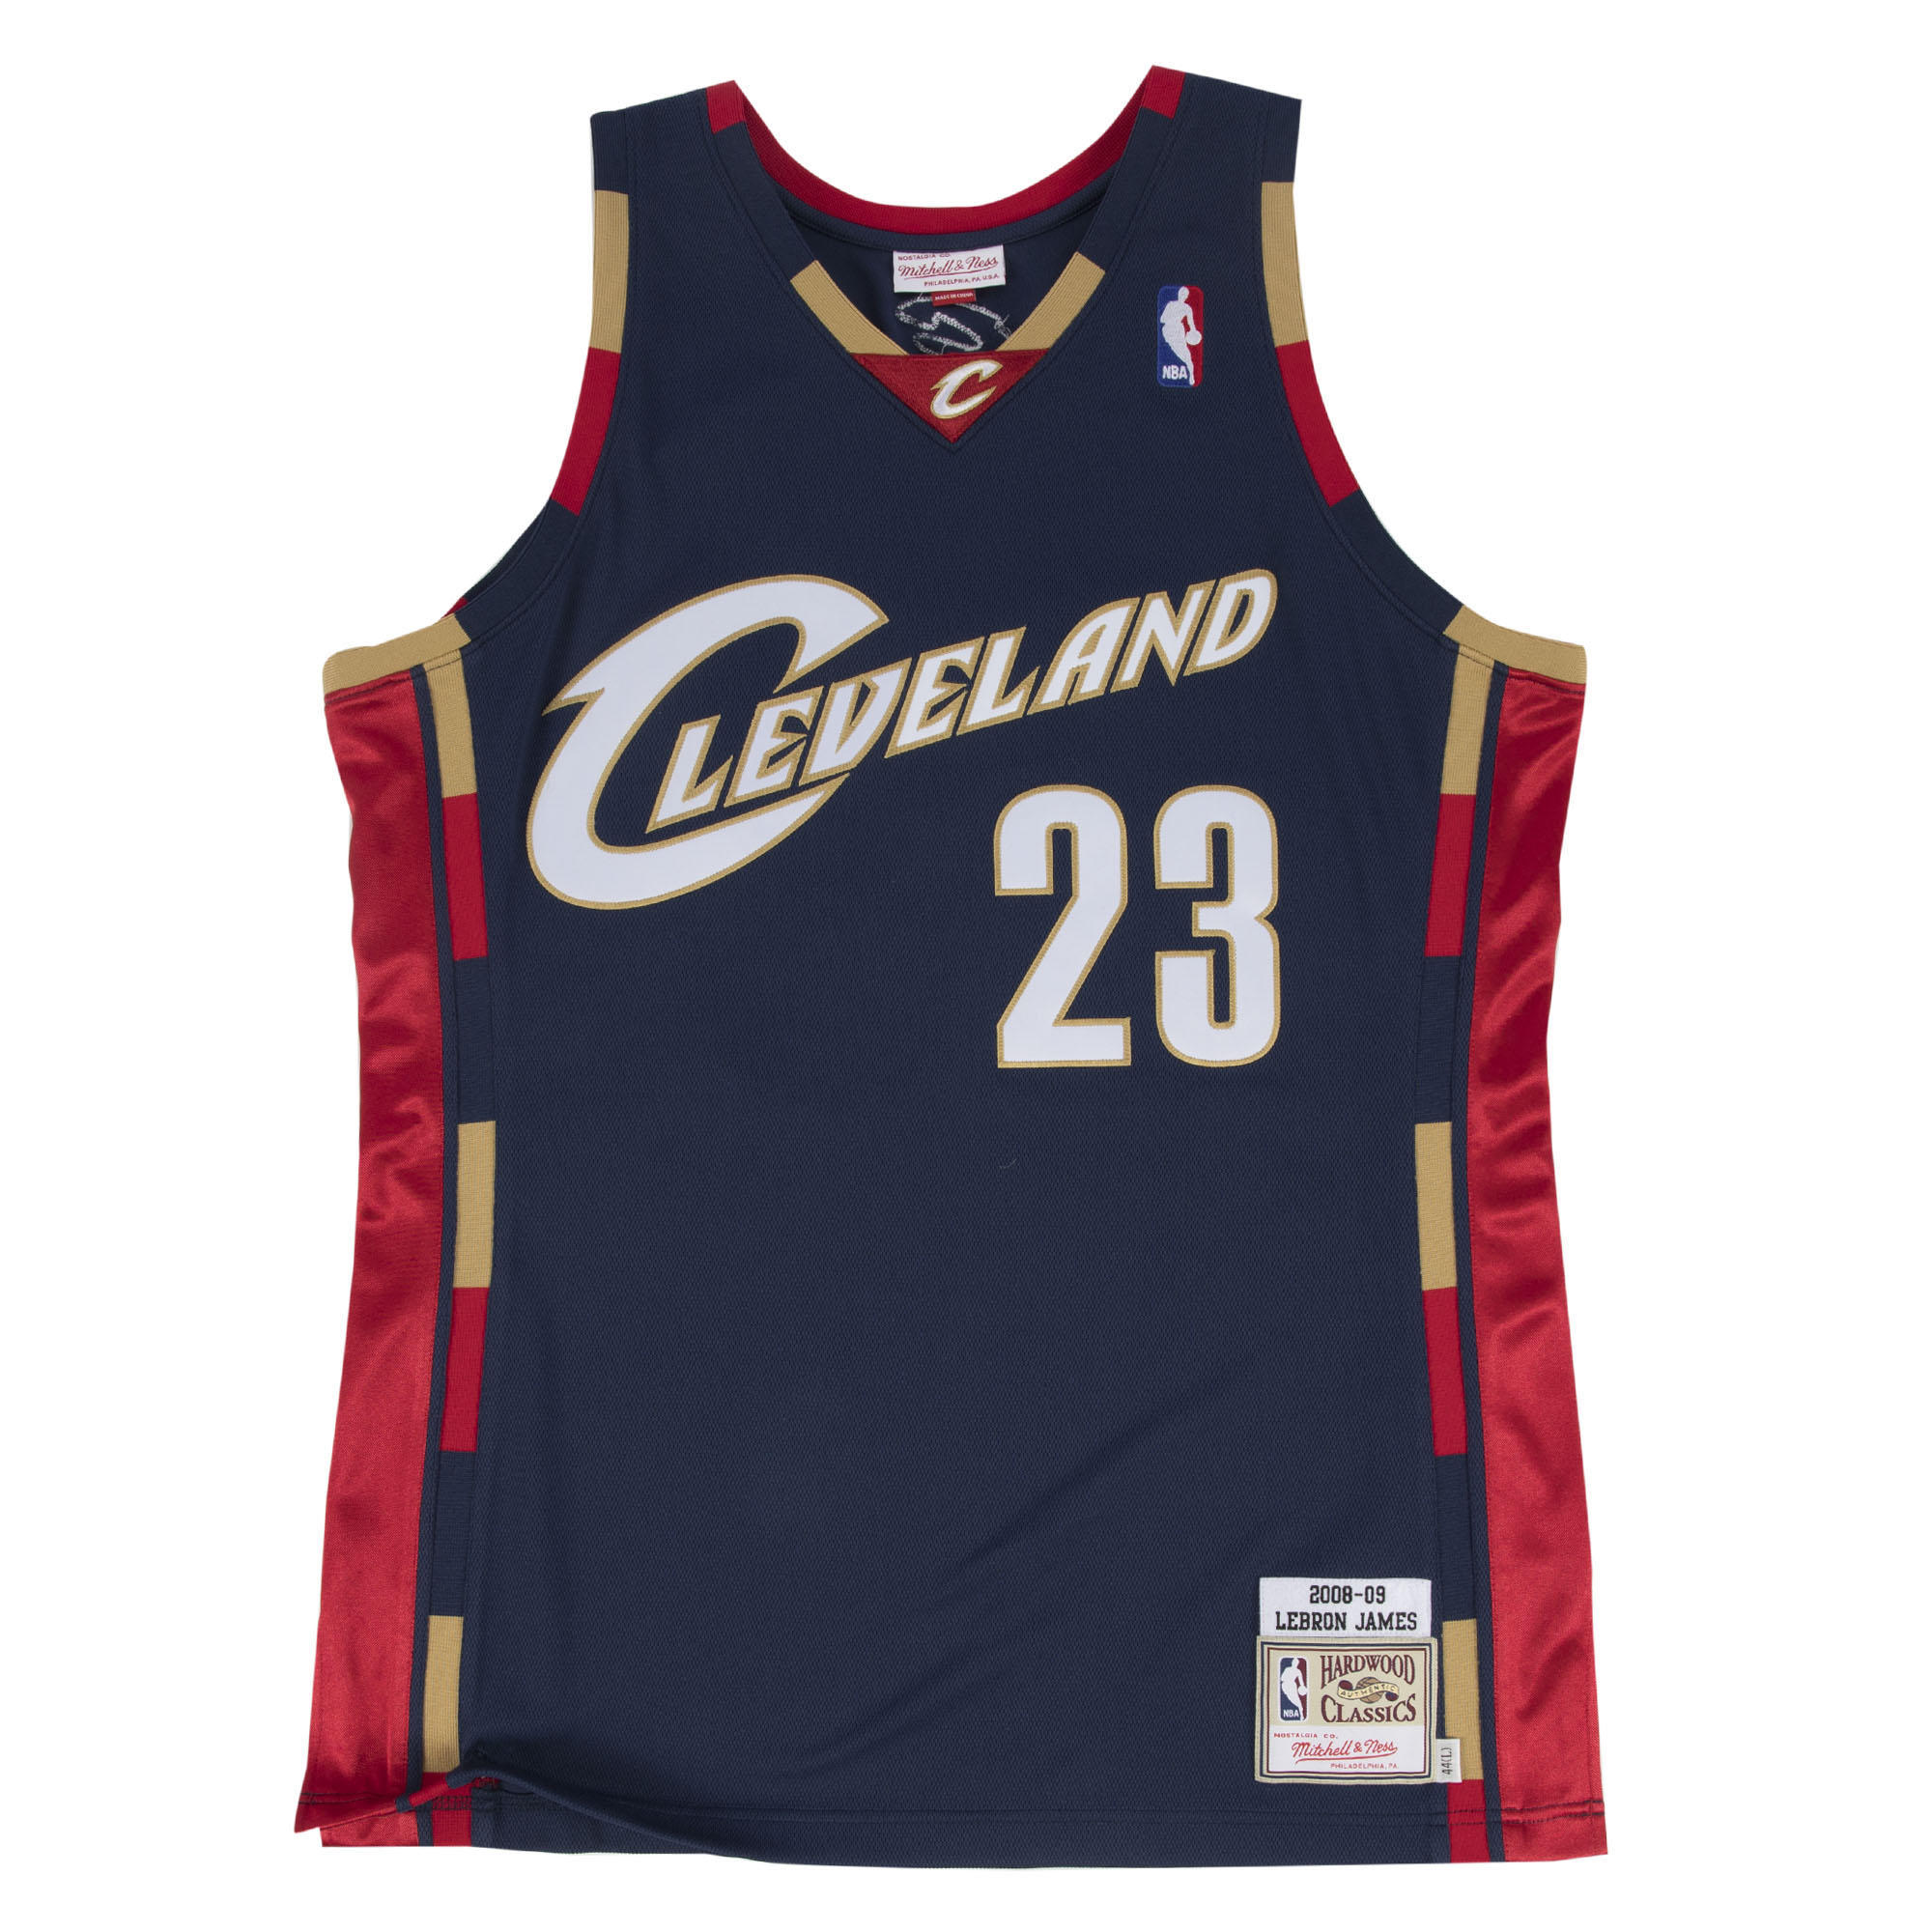 premium selection 1e568 af6af Mitchell & Ness Nostalgia Co. | LeBron James 2008-09 ...